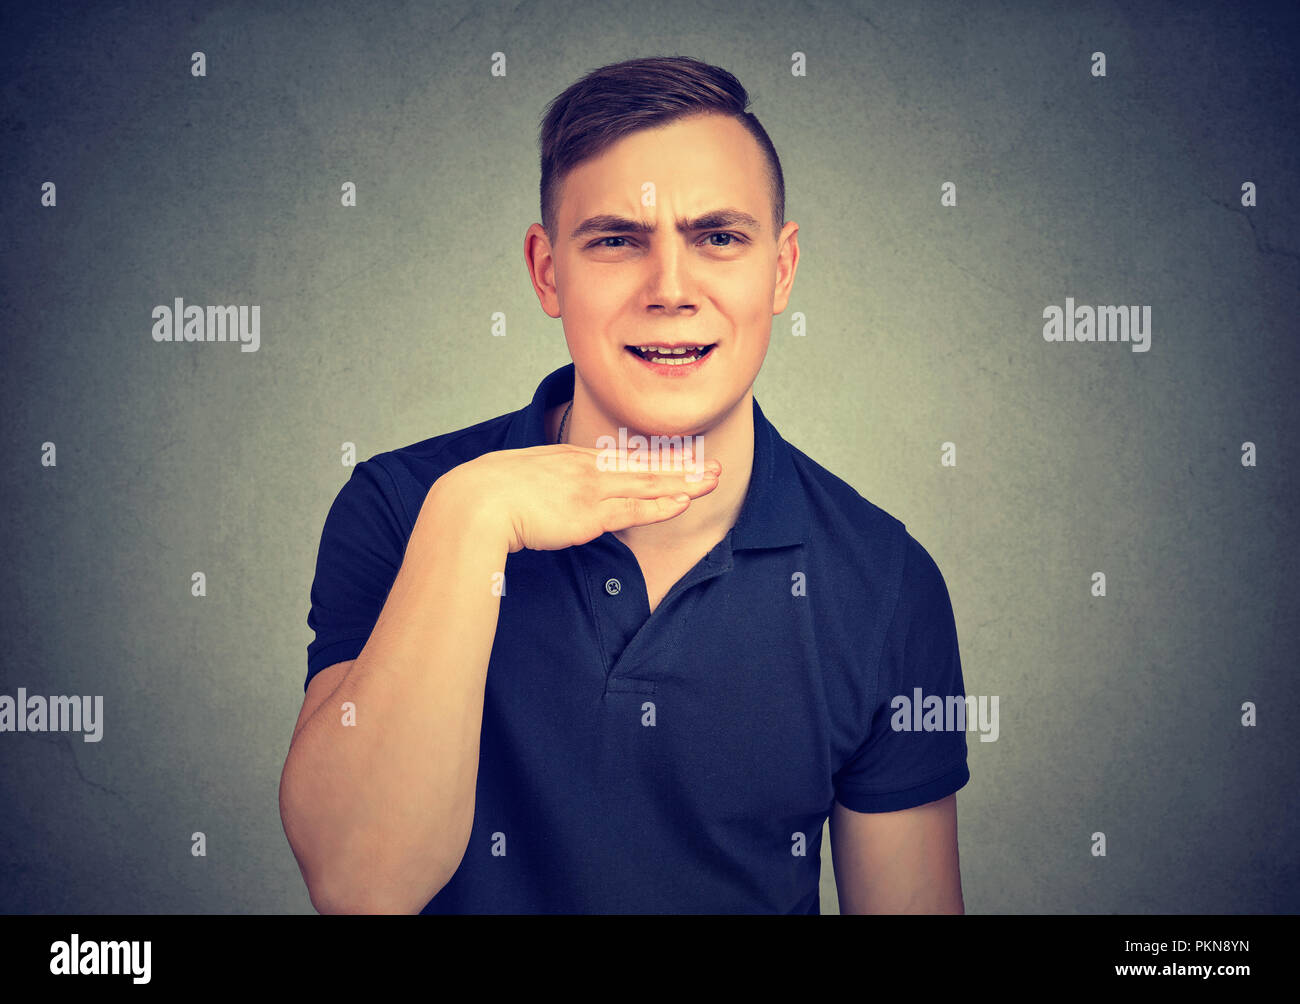 Young angry man being rude and mocking up while looking at camera negatively - Stock Image